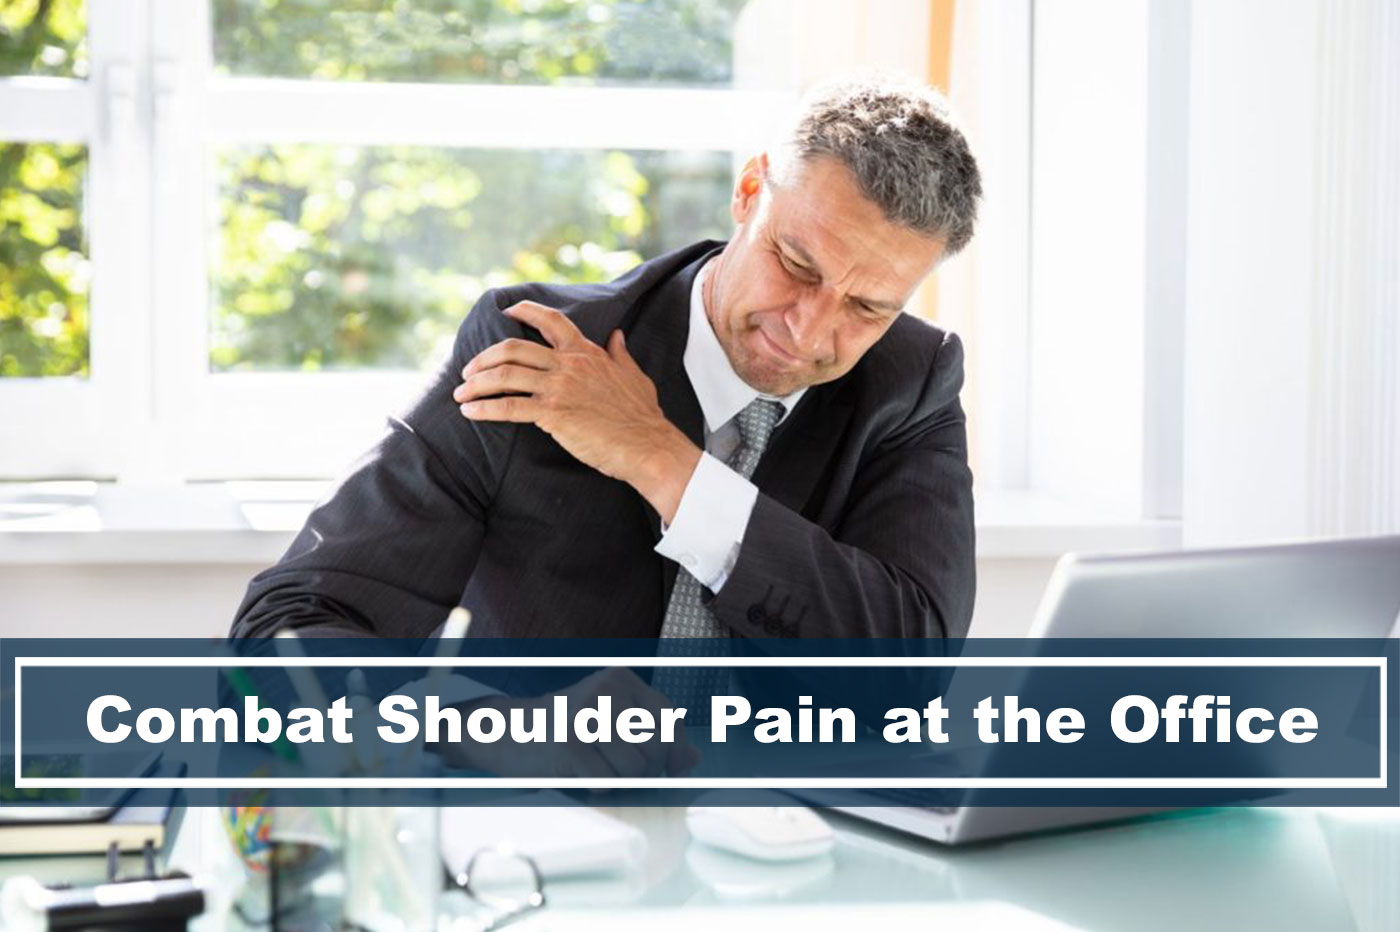 7 Effective Ways To Combat Shoulder Pain At The Office